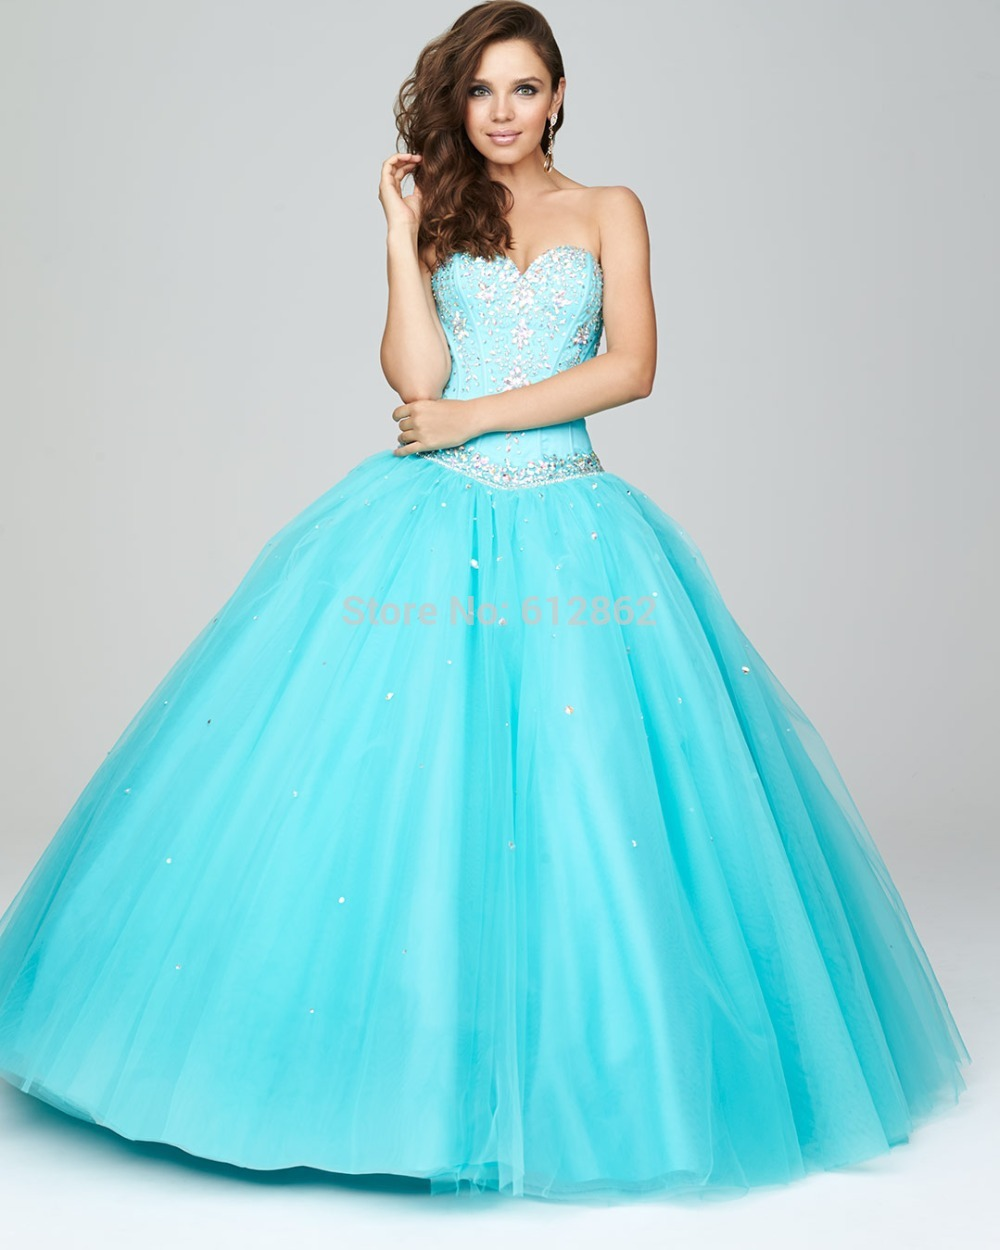 Puffy White Prom Dresses - Homecoming Party Dresses